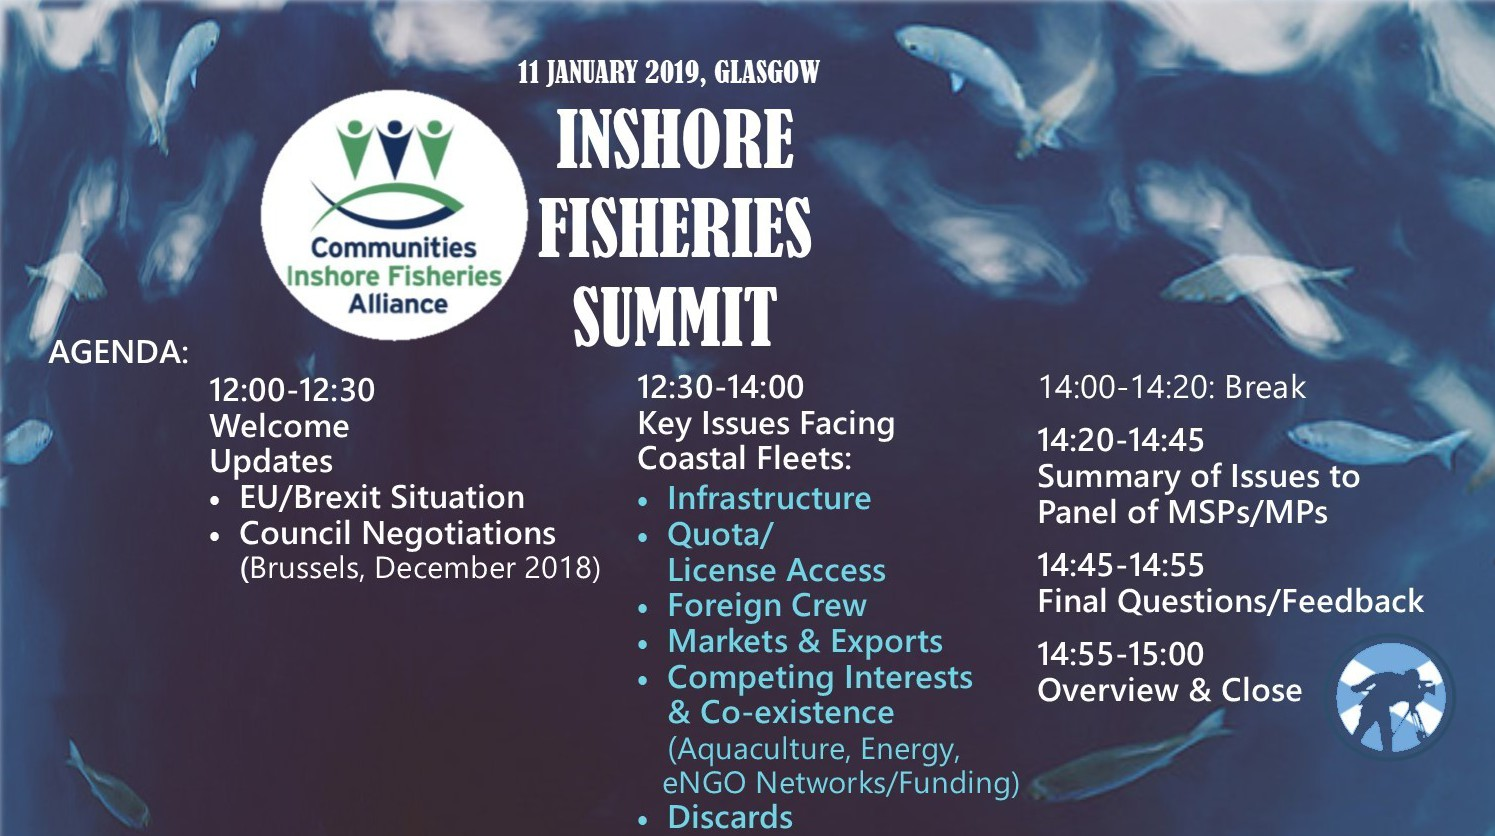 CIFA Inshore Fisheries Summit